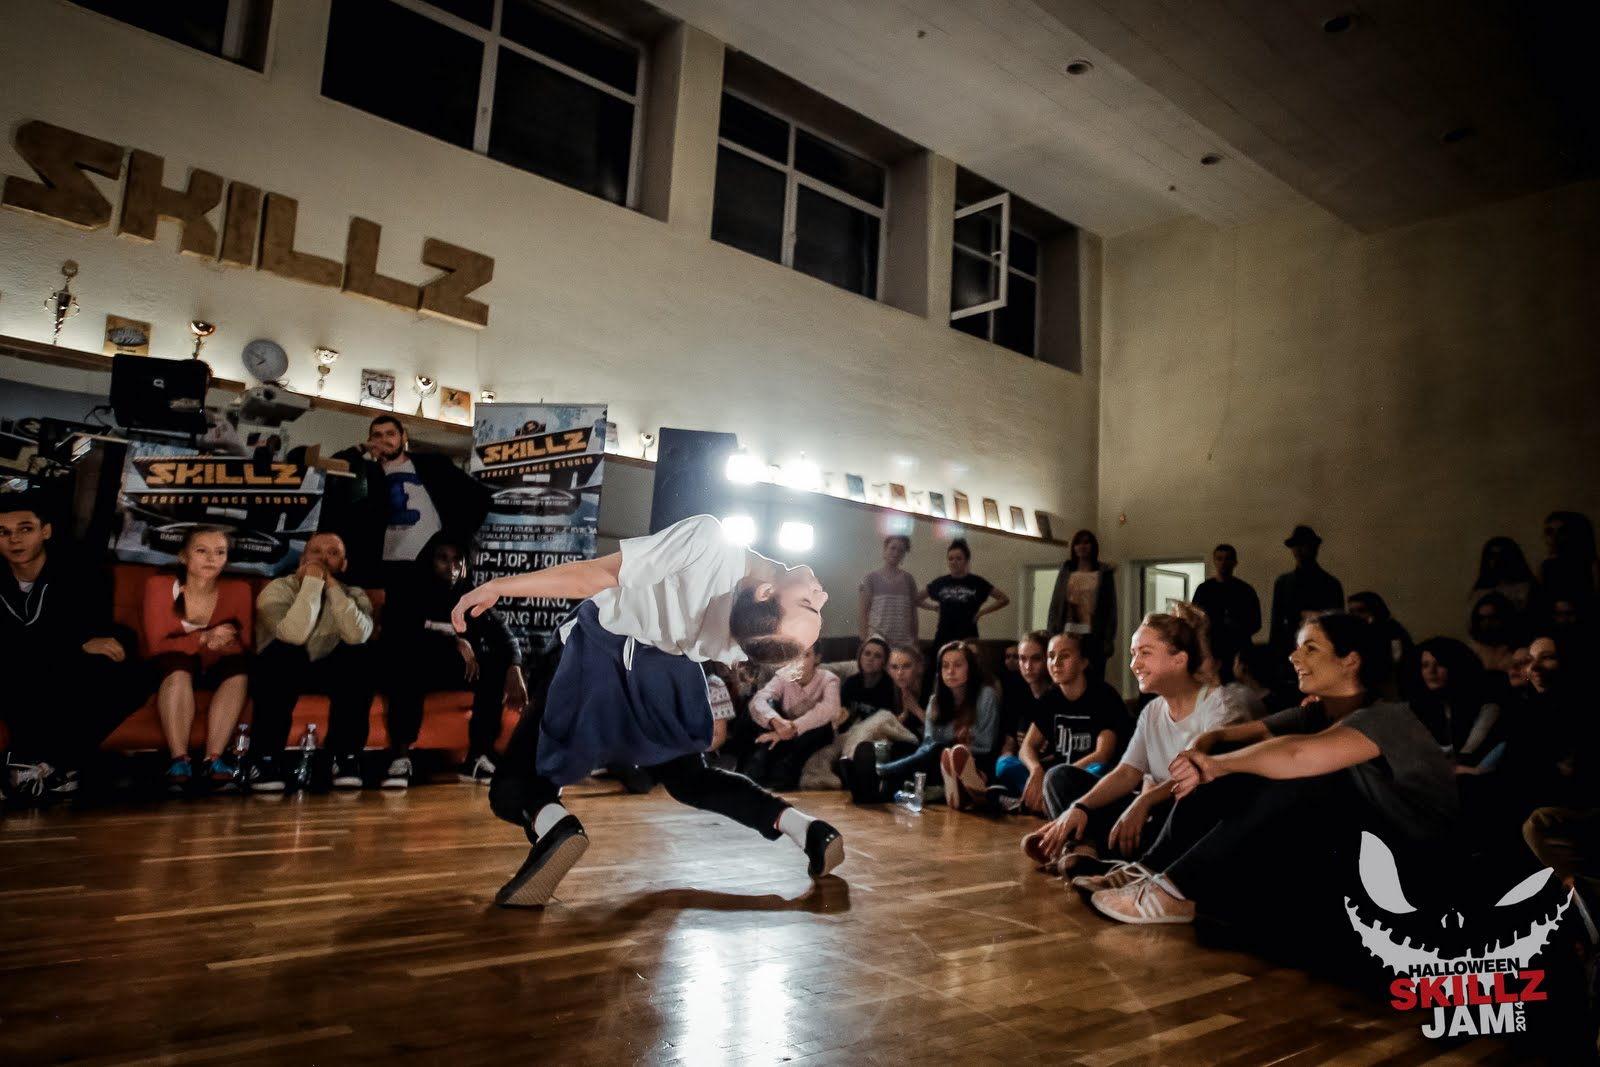 SKILLZ Halloween Jam Battles - a_MG_1740.jpg